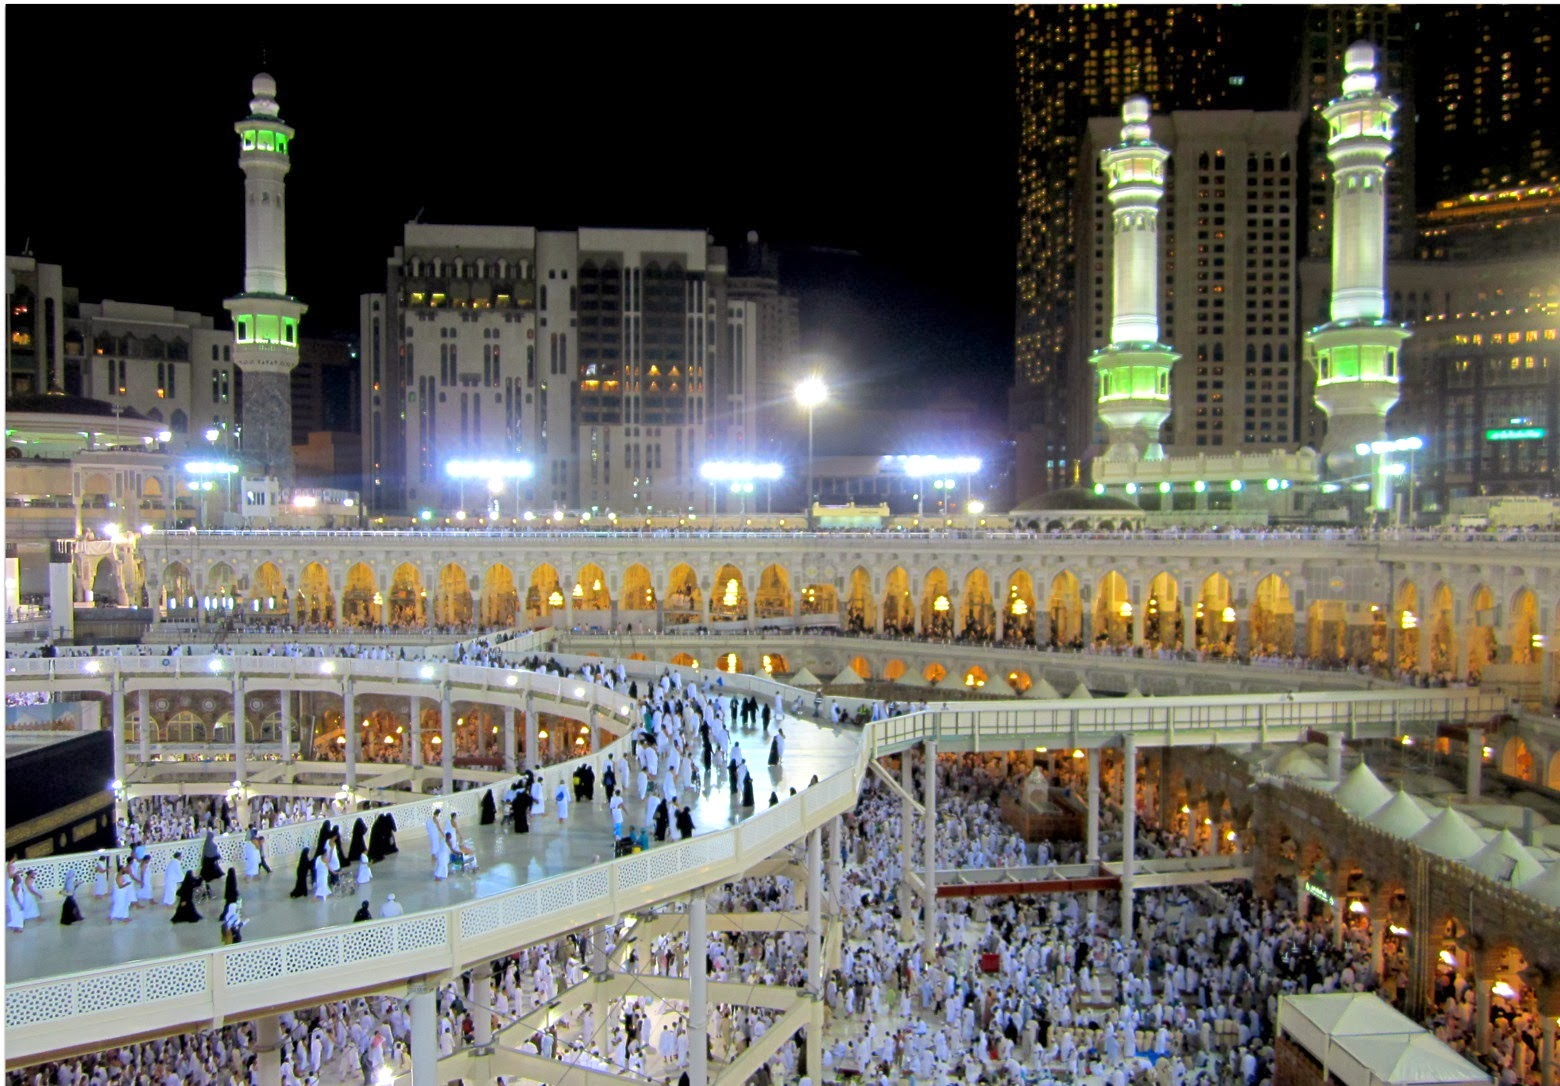 Masjid Al Haram HD Wallpapers 2014 Articles about Islam